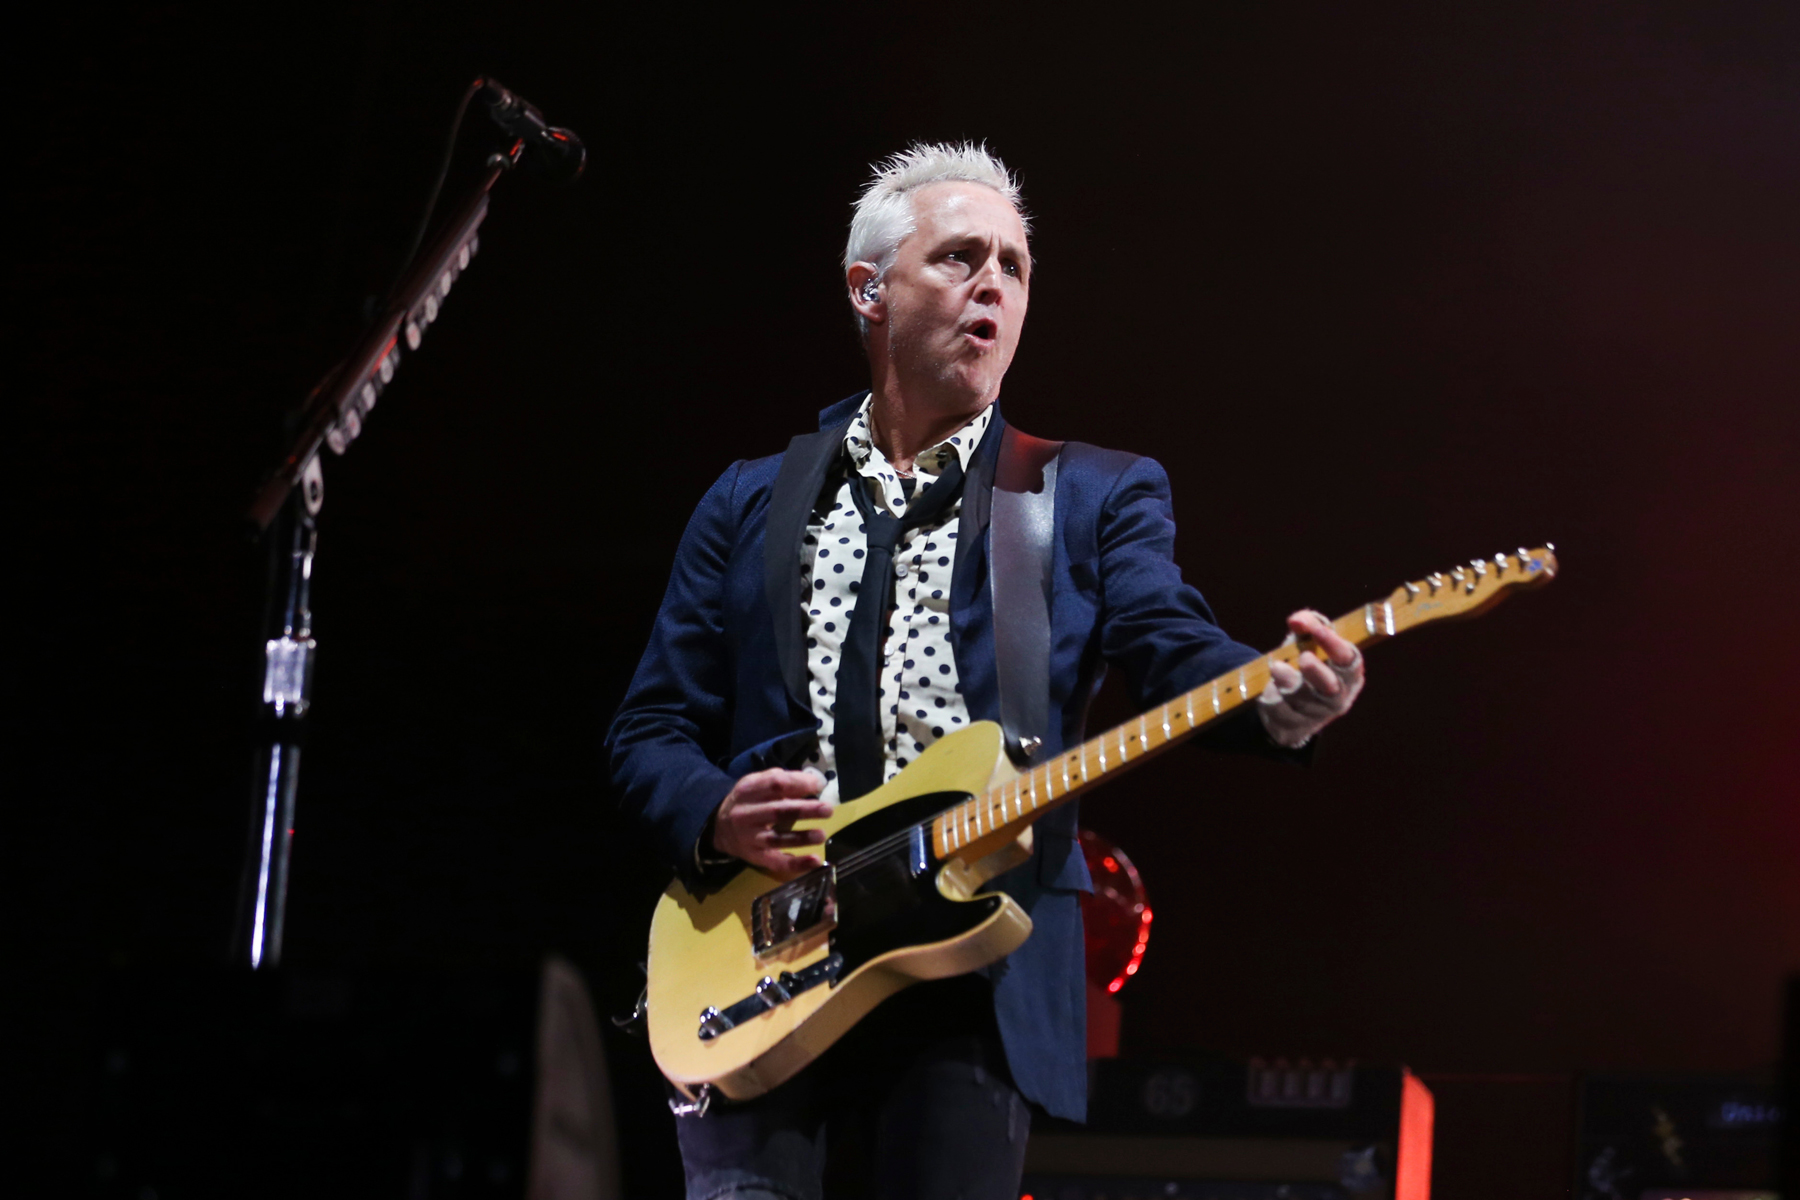 Mike McCreadyNOS Alive Festival in Oeiras, Portugal - 14 Jul 2018Mike McCready, lead guitarist of US rock band Pearl Jam, performs at the NOS Alive Festival in Oeiras, on the outskirts of Lisbon, Portugal, 14 July 2018. The festival runs from 12 to 14 July.